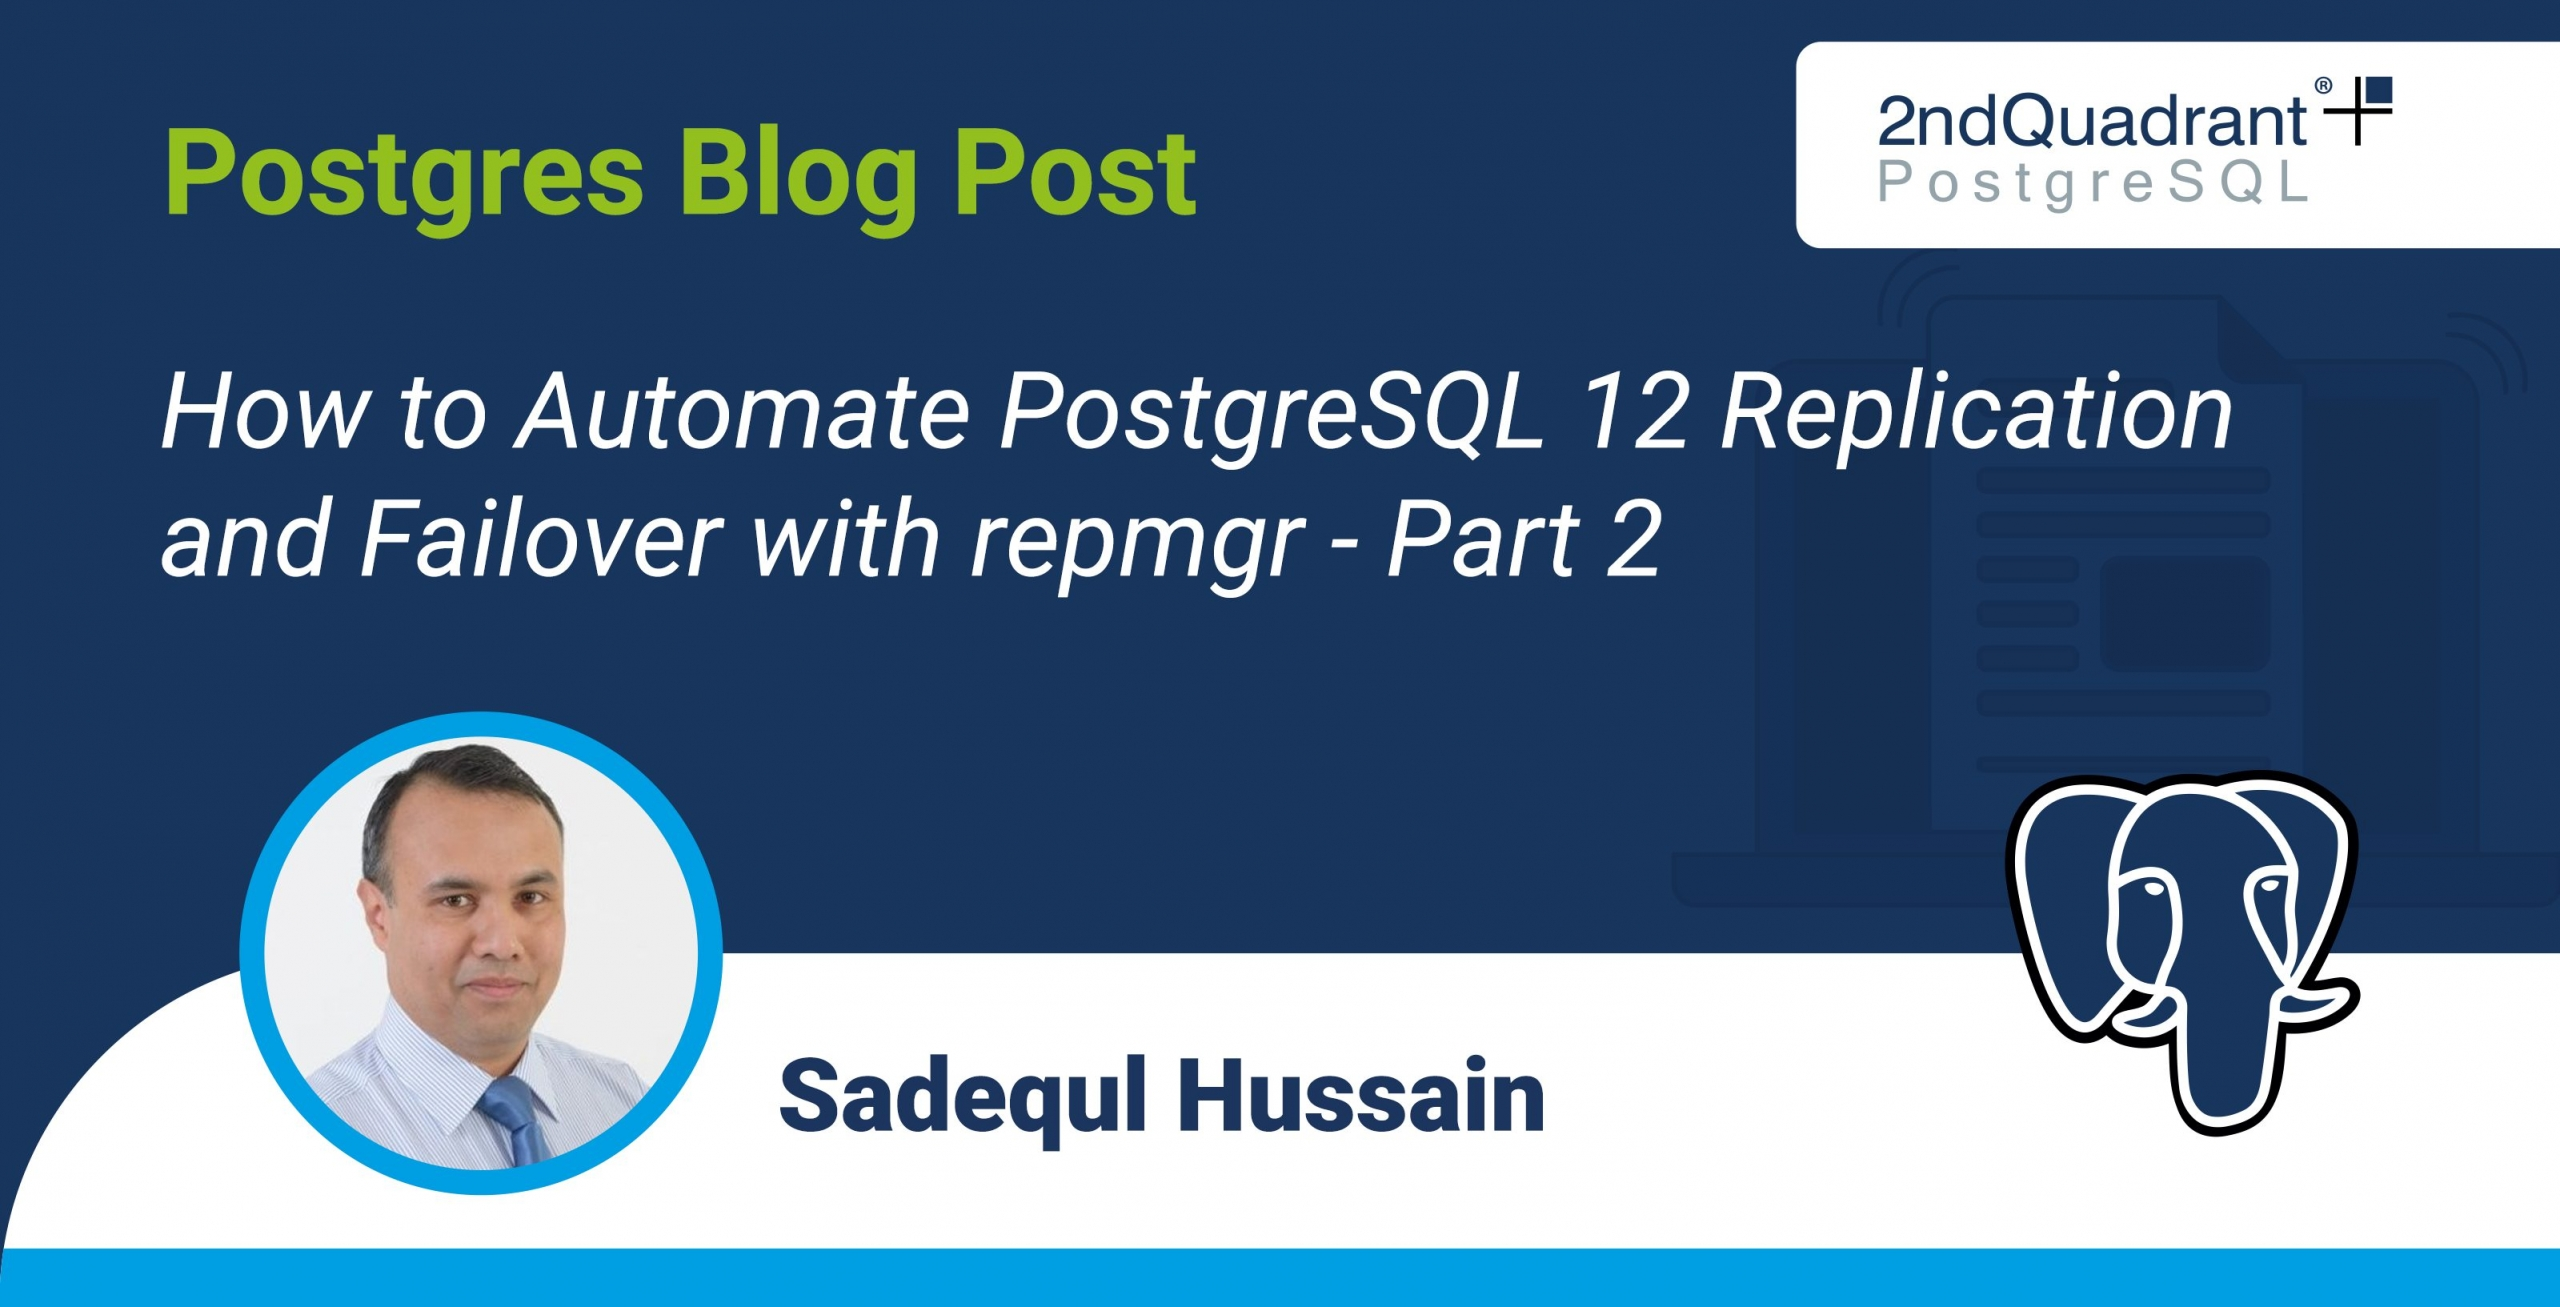 How to Automate PostgreSQL 12 Replication and Failover with repmgr – Part 2